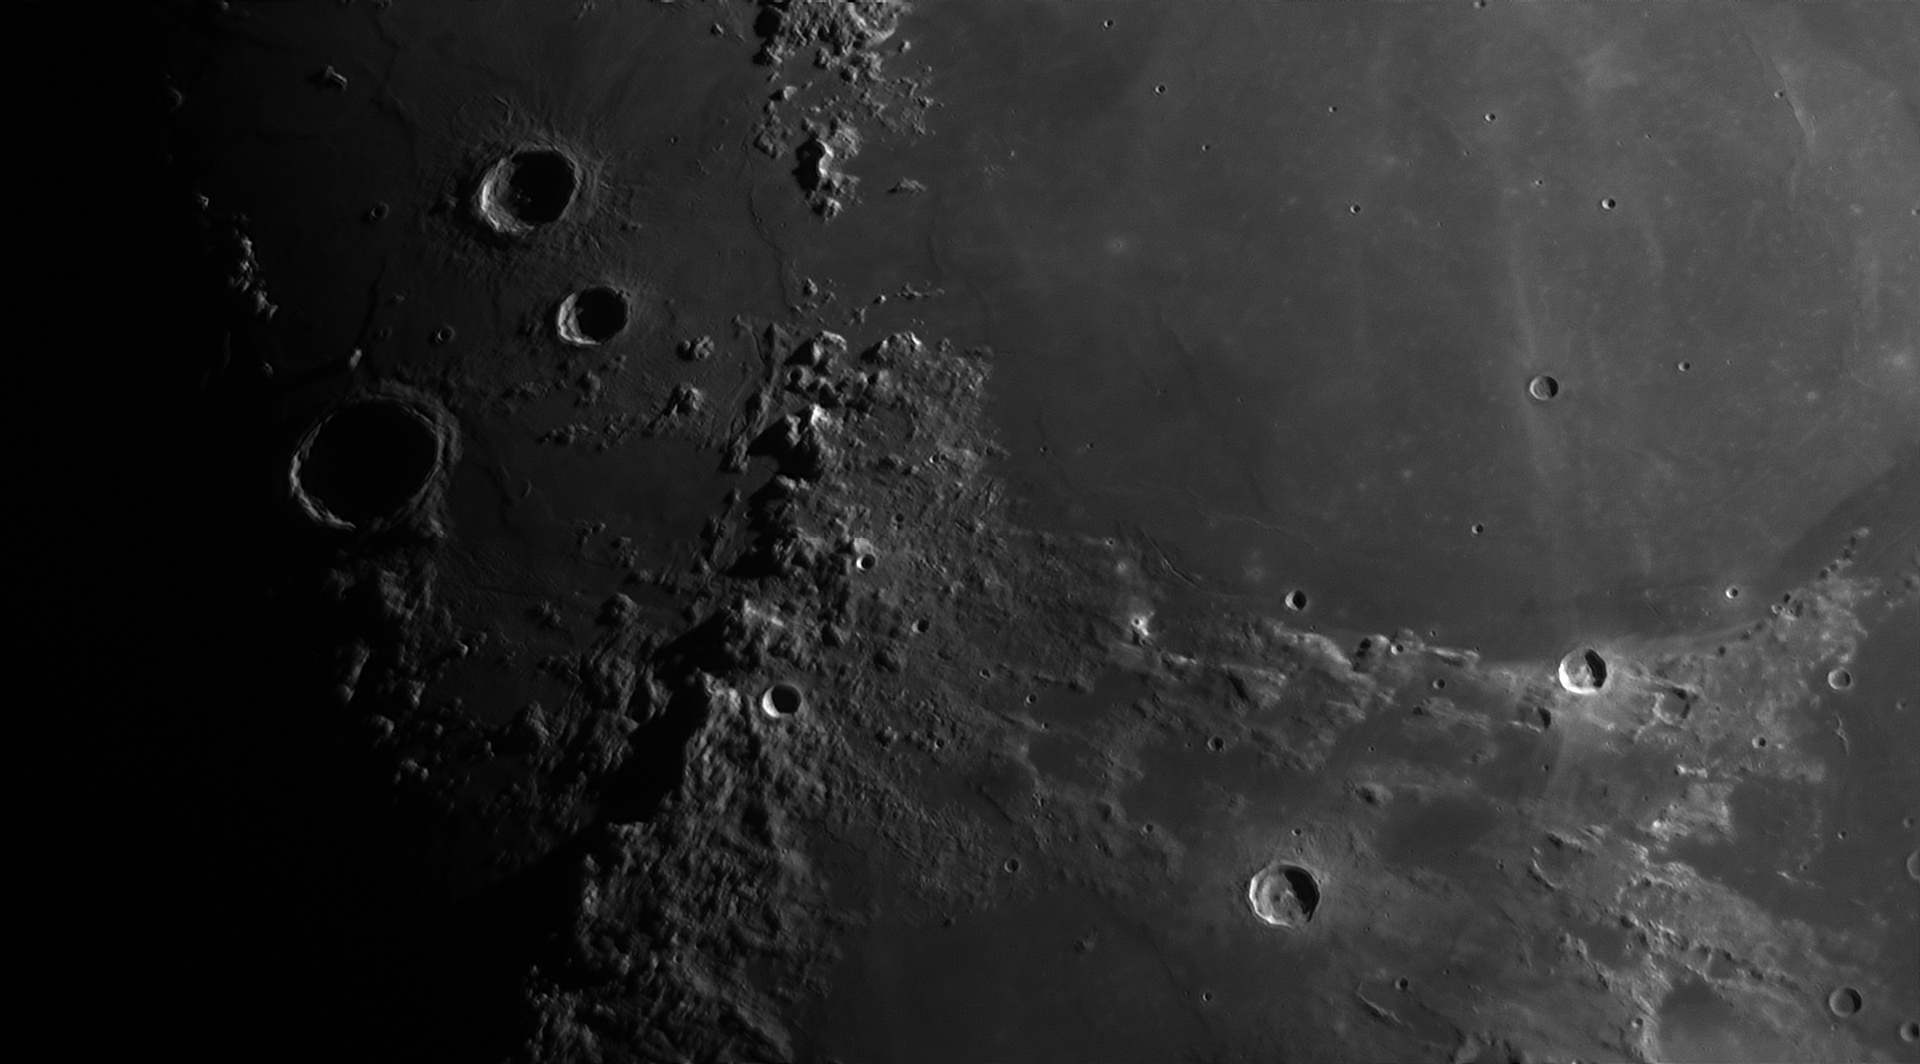 5d005396a24b5_Moon_225348_100619_ZWOASI290MM_Rouge_23A_AS_P30_lapl4_ap944ass.jpg.713d32ace91a04c6b1060957bd6b4f11.jpg